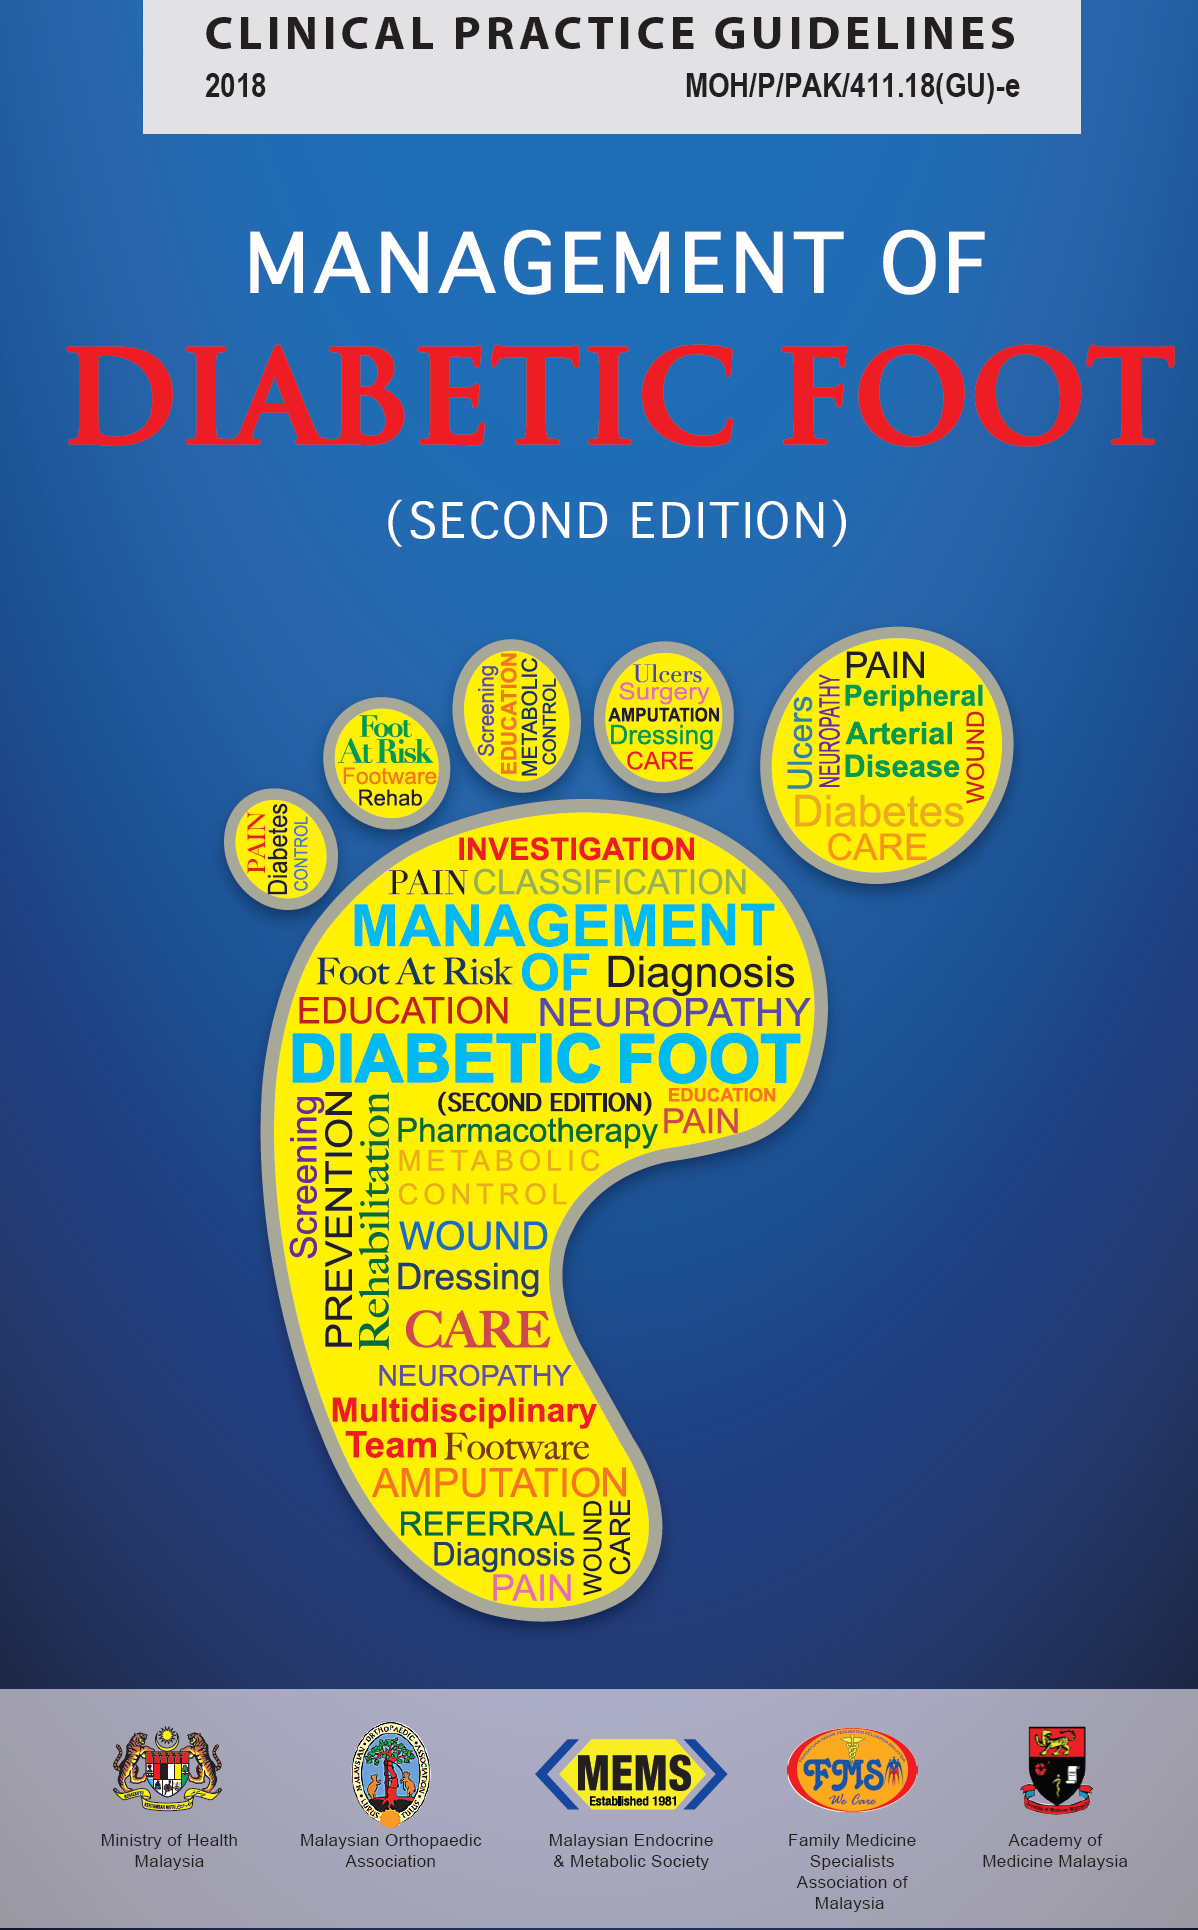 Cpg Management Of Diabetic Foot Second Edition 2018 Malaysian